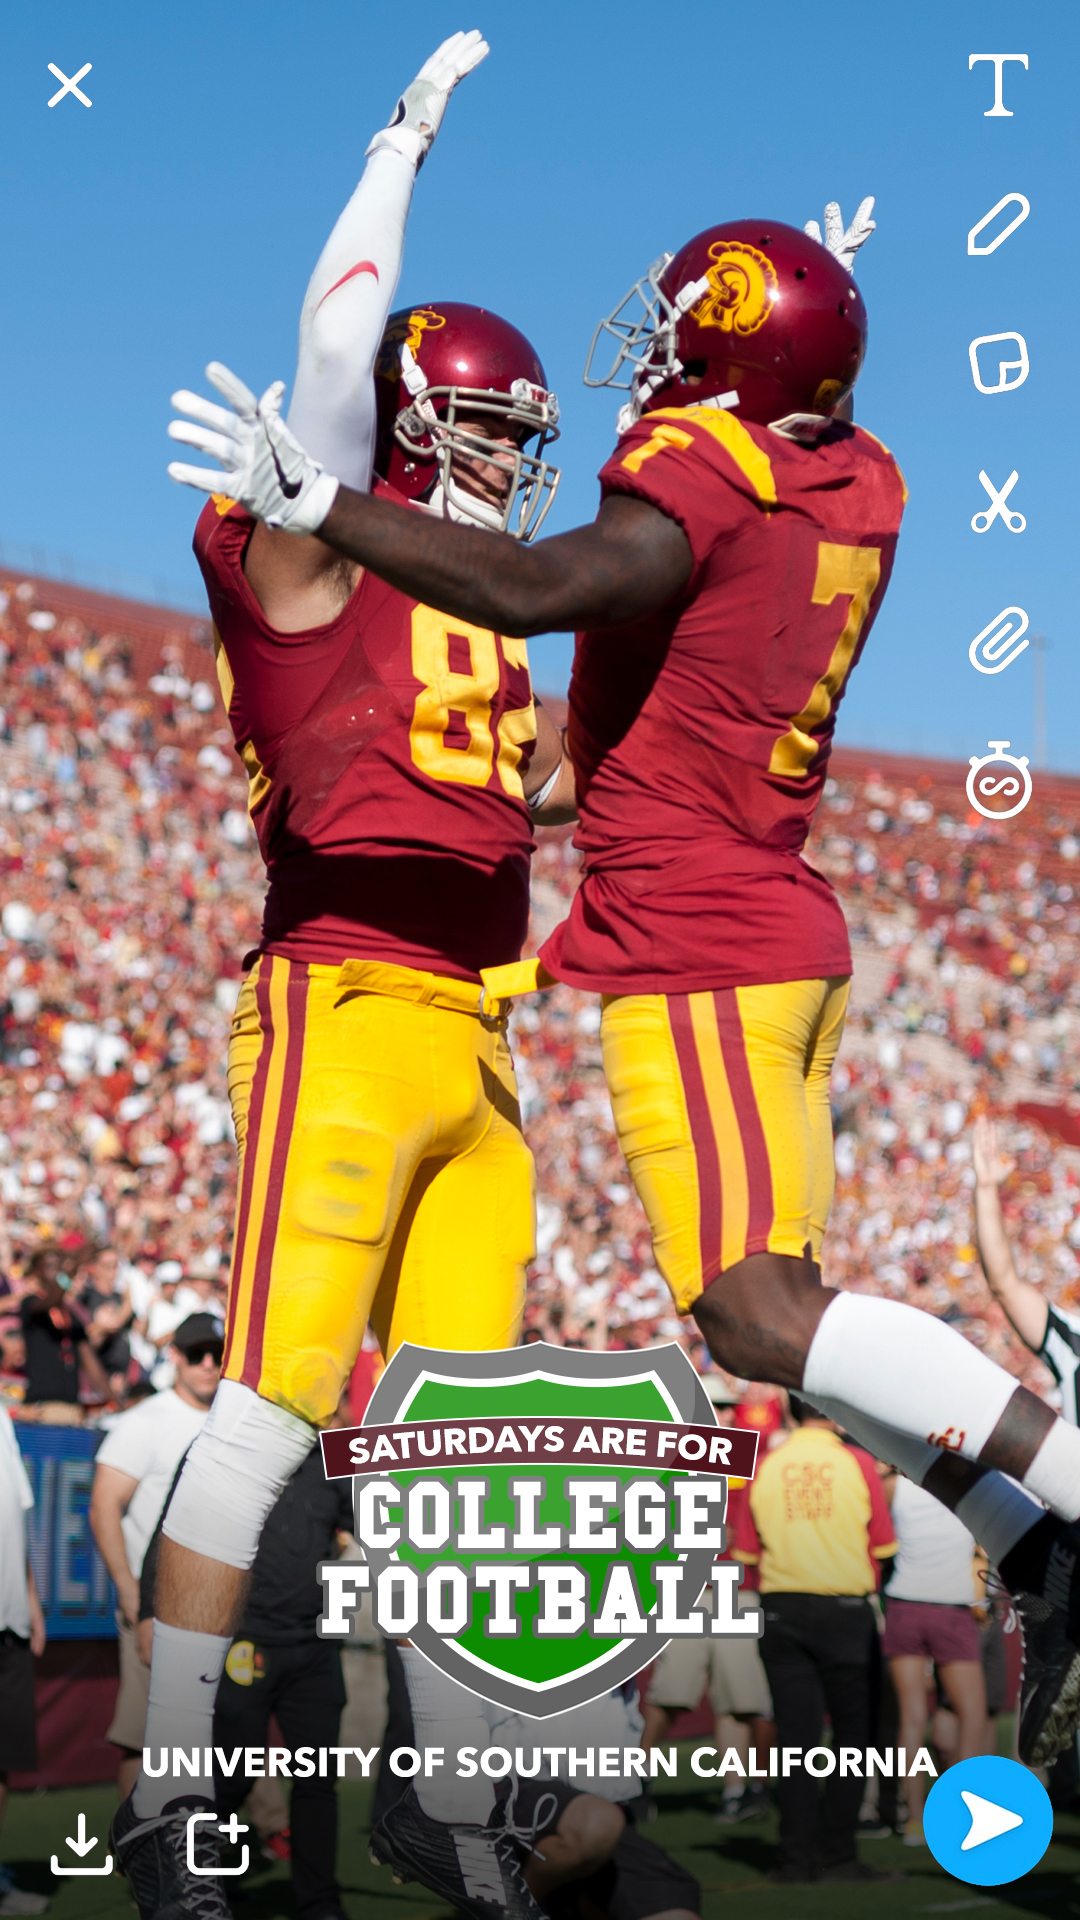 Saturdays-Are-For-College-Football